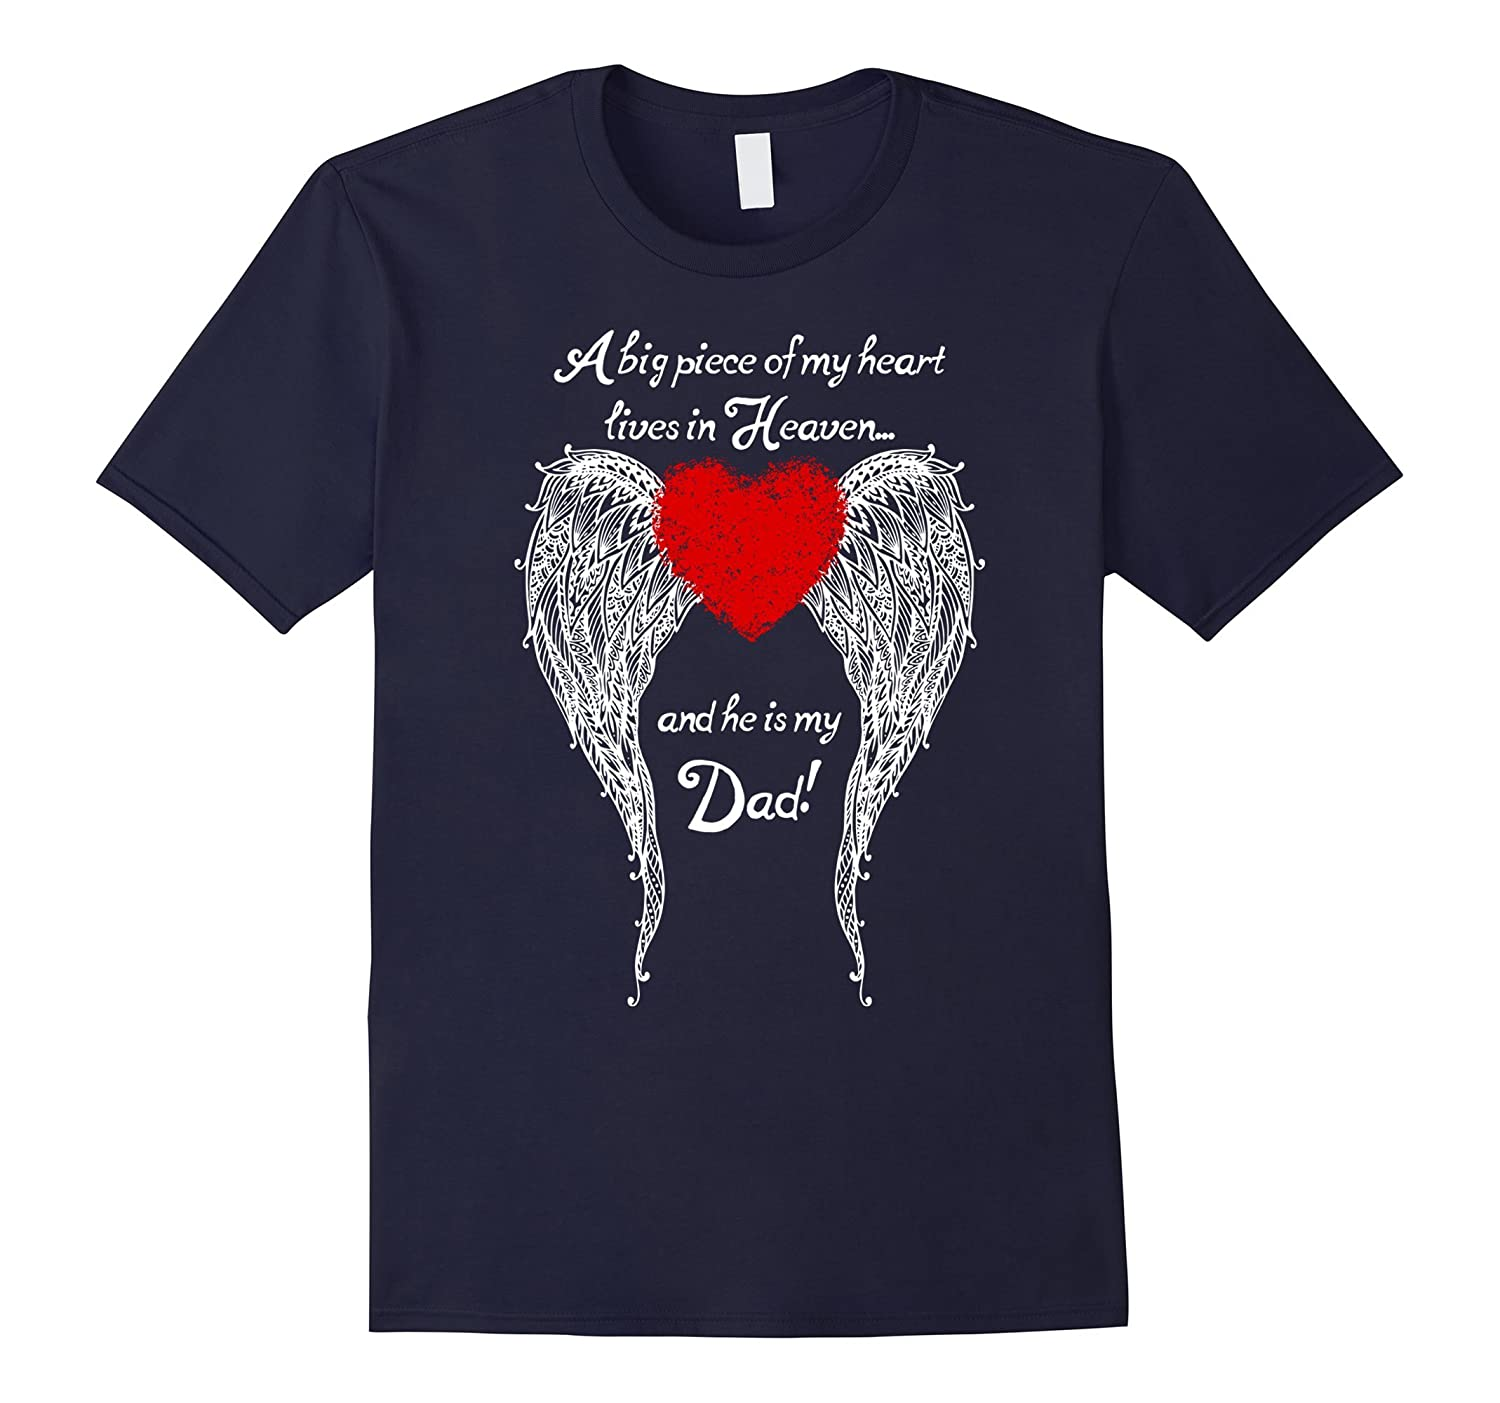 A Big Piece Of My Heart Lives In Heaven T-shirt-BN